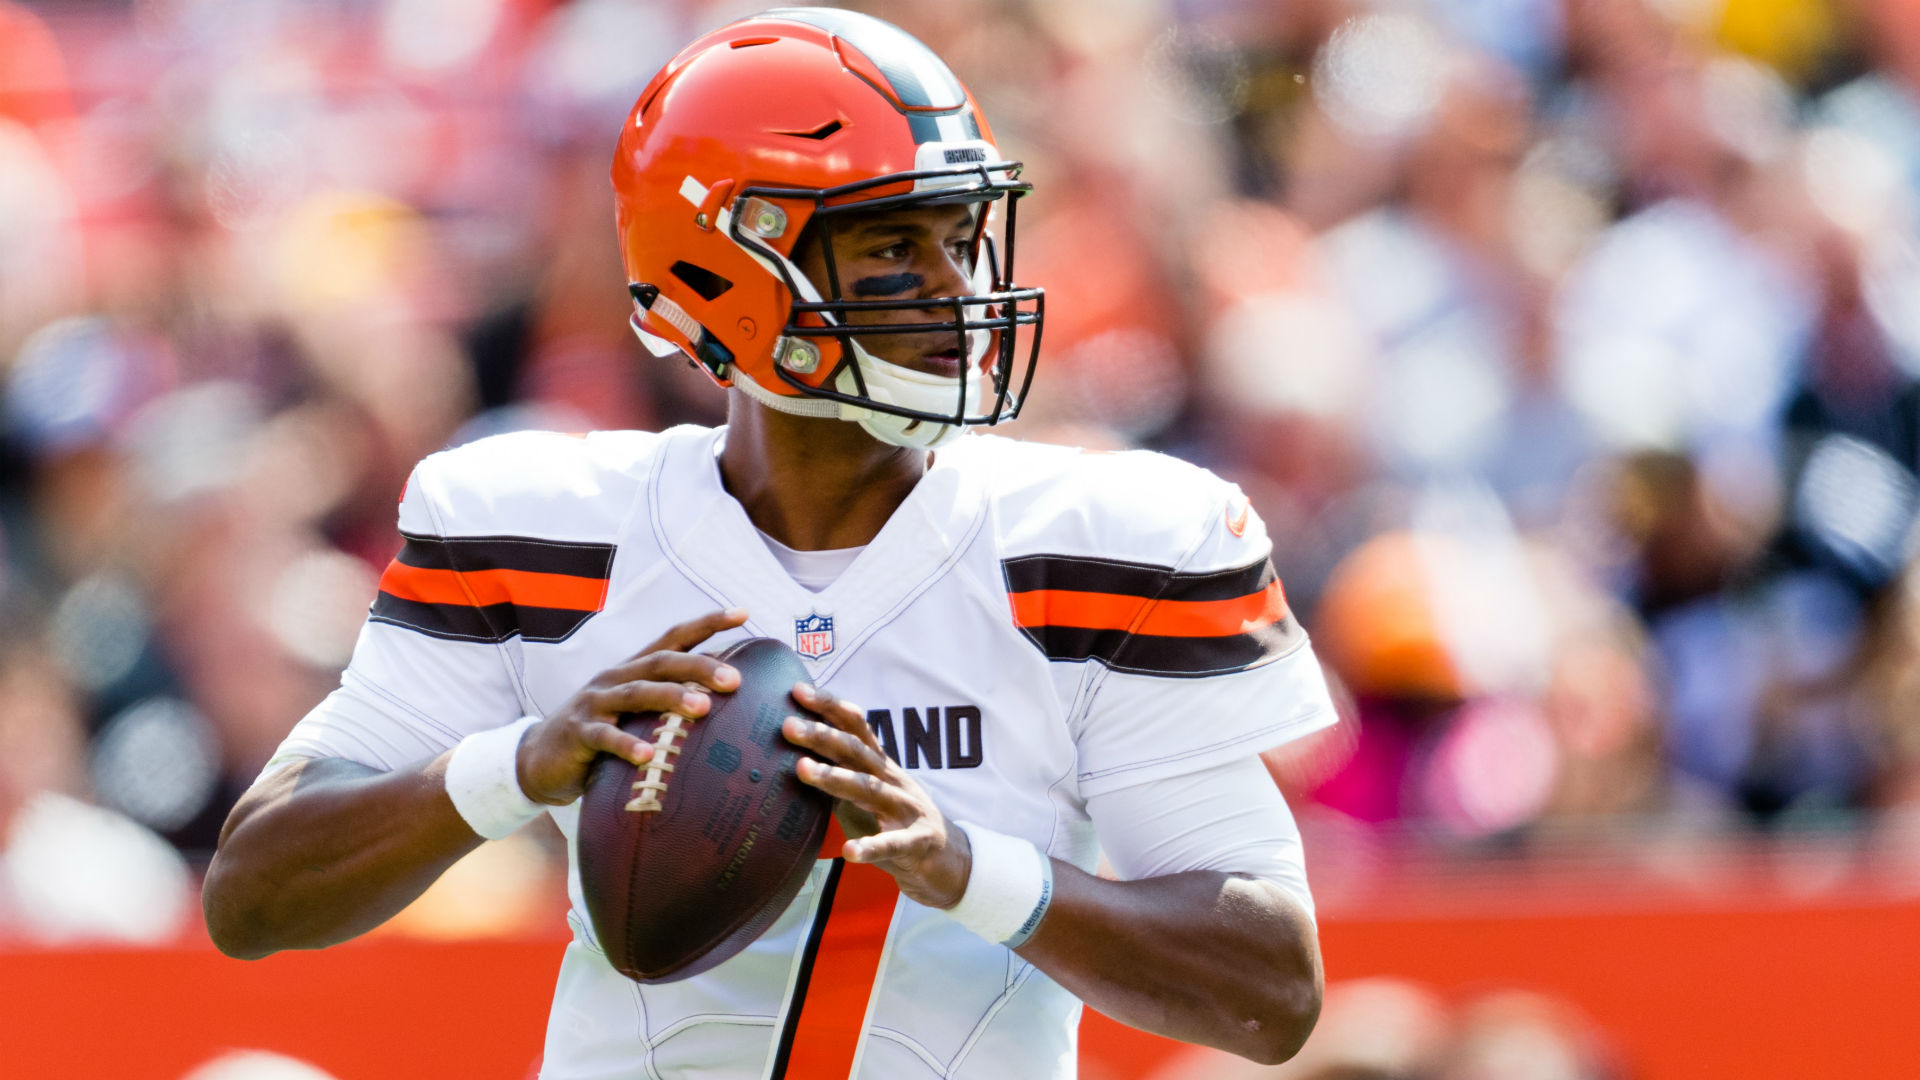 DeShone Kizer gives Cleveland 'hope' says Hue Jackson